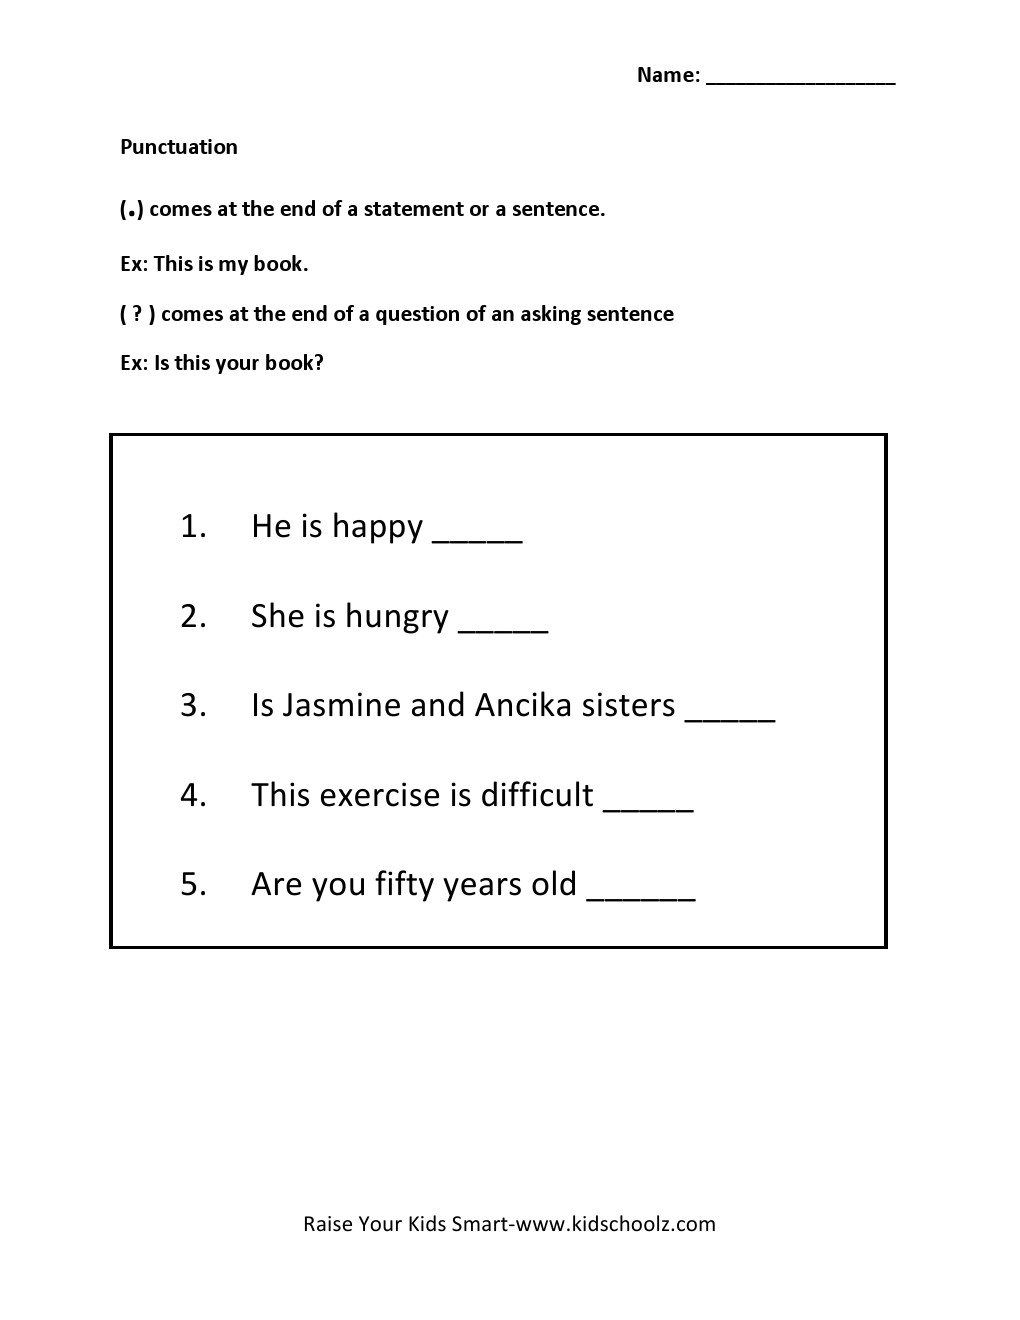 Punctuation Worksheets Grade 2 Free Worksheets Library | Download ...